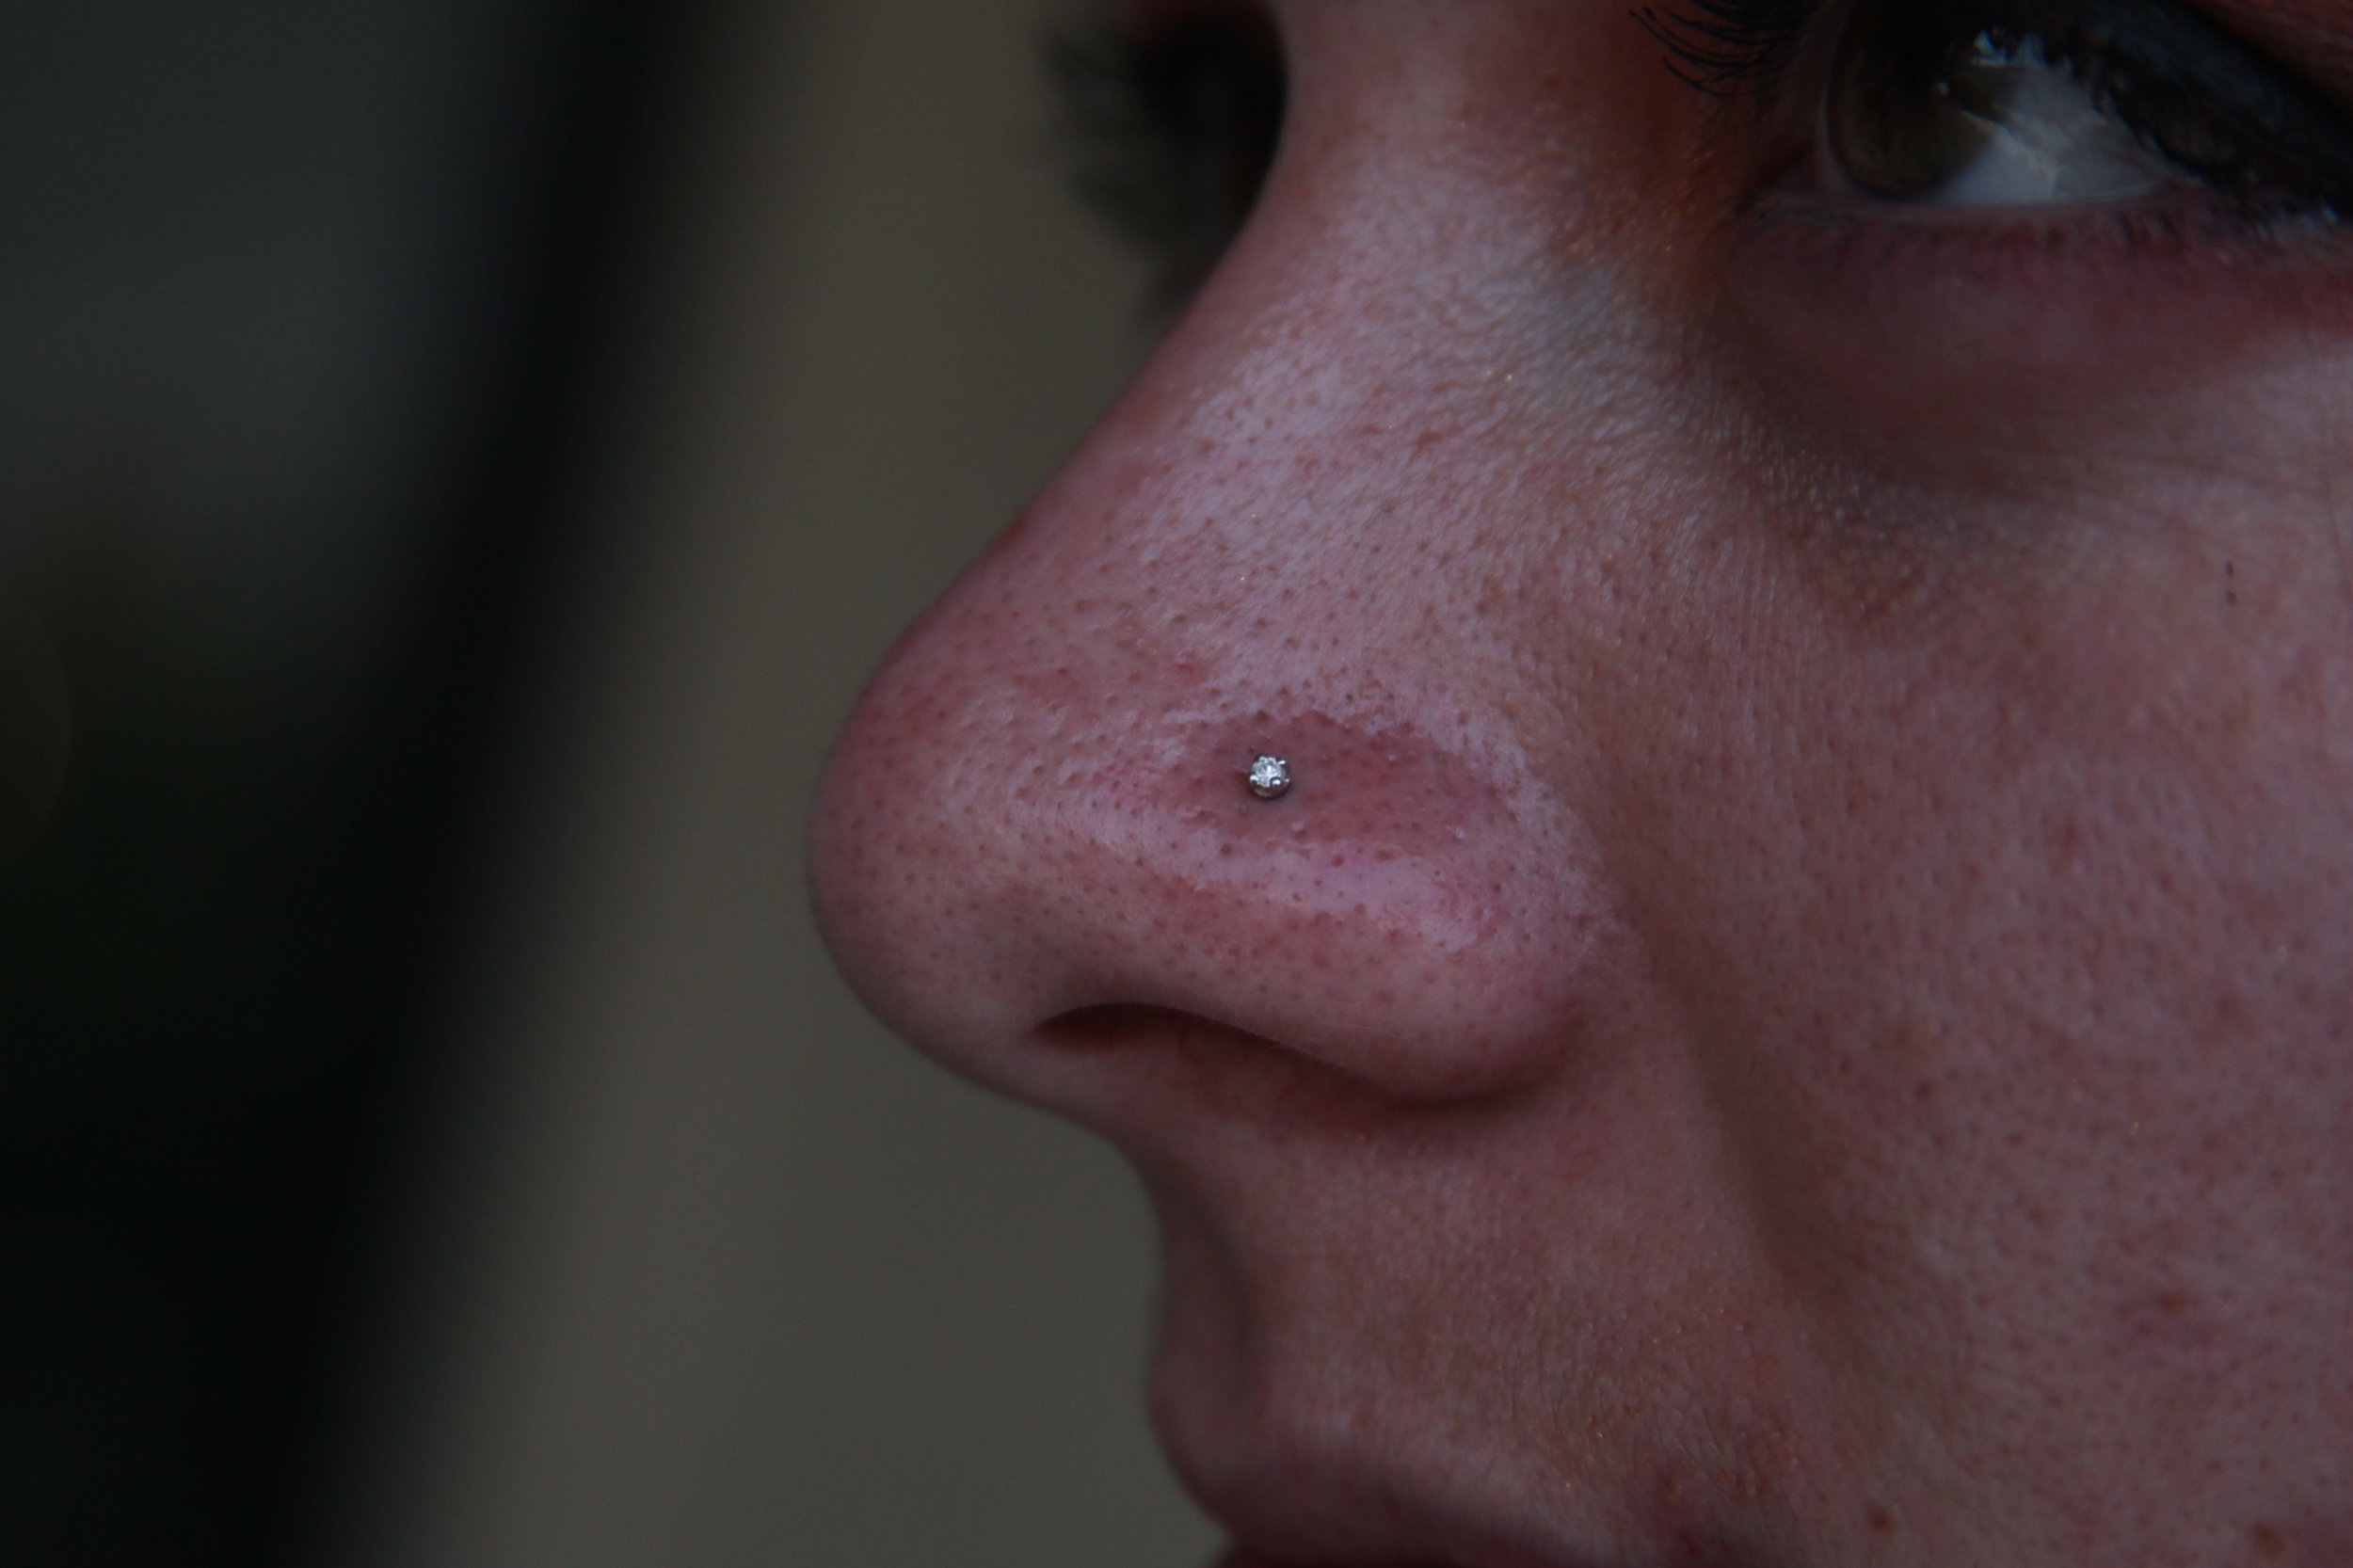 Nostril Piercings - Nostril piercings are a classic piercing that have been visible in pop culture since the 1990's. There is a wide variety of jewelry that can be worn in this piercing, depending on personal aesthetics. This piercing is started with a stud, and we recommend waiting a minimum of 4 months before attempting to switch to a ring. Full healing time can range from 6 to 9 months.